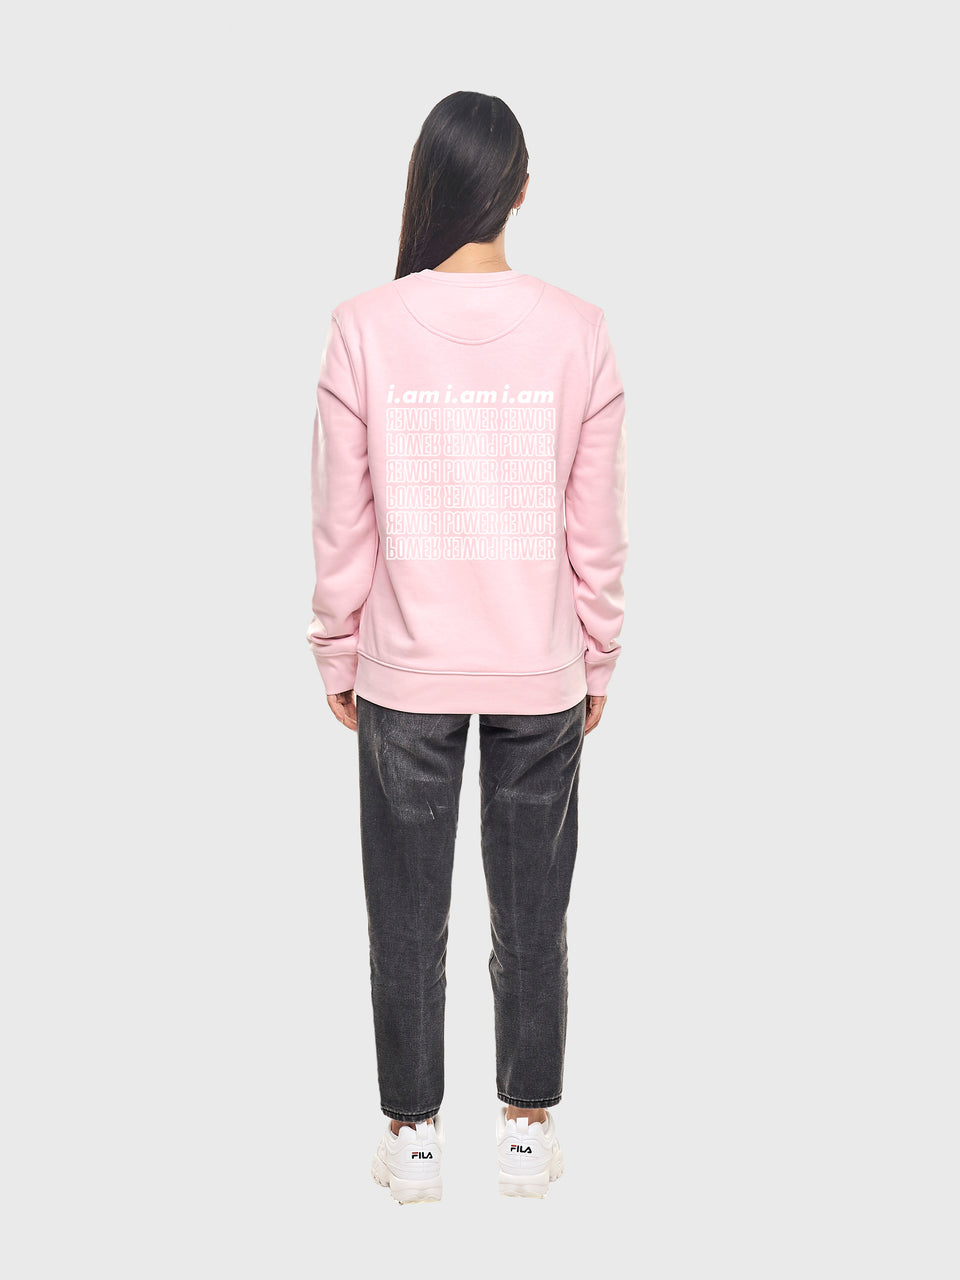 Power - Pink - Unisex sweatshirt